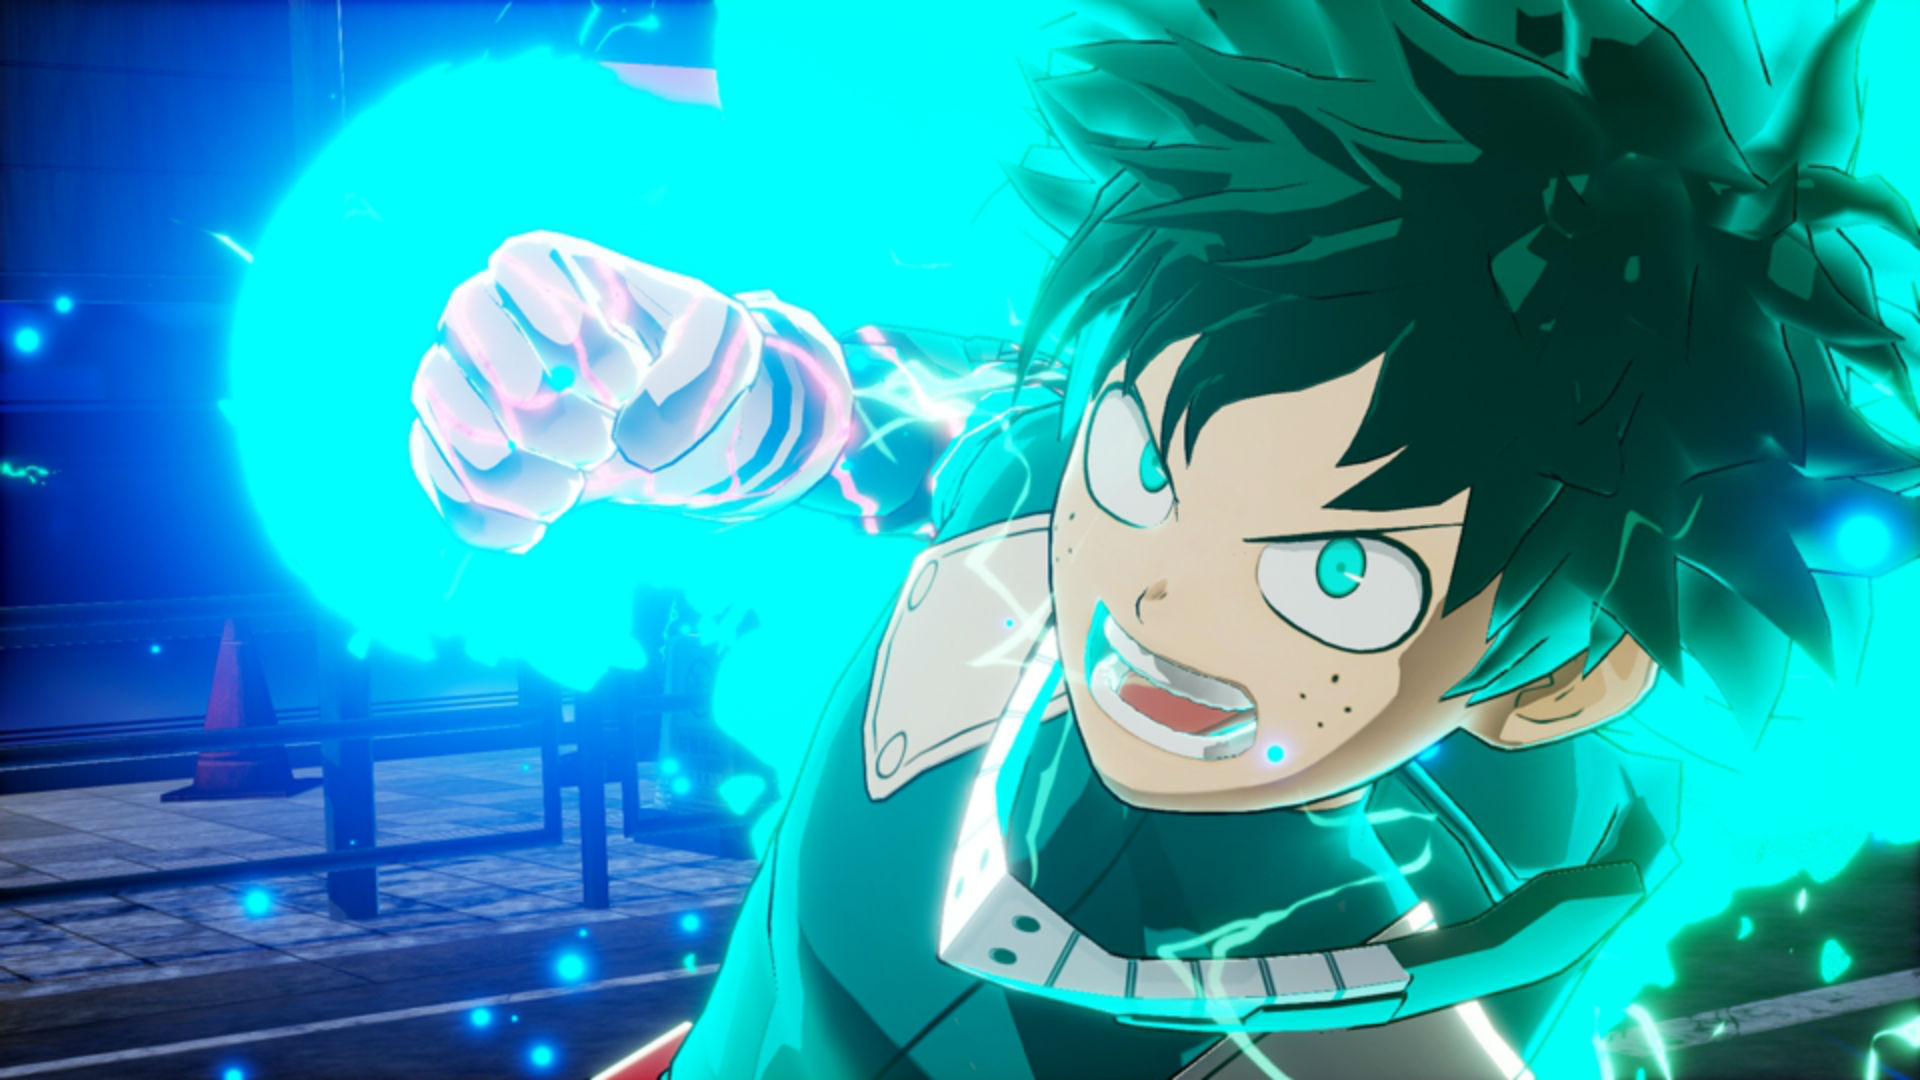 These My Hero Academia One S Justice Screenshots Go Plus Ultra